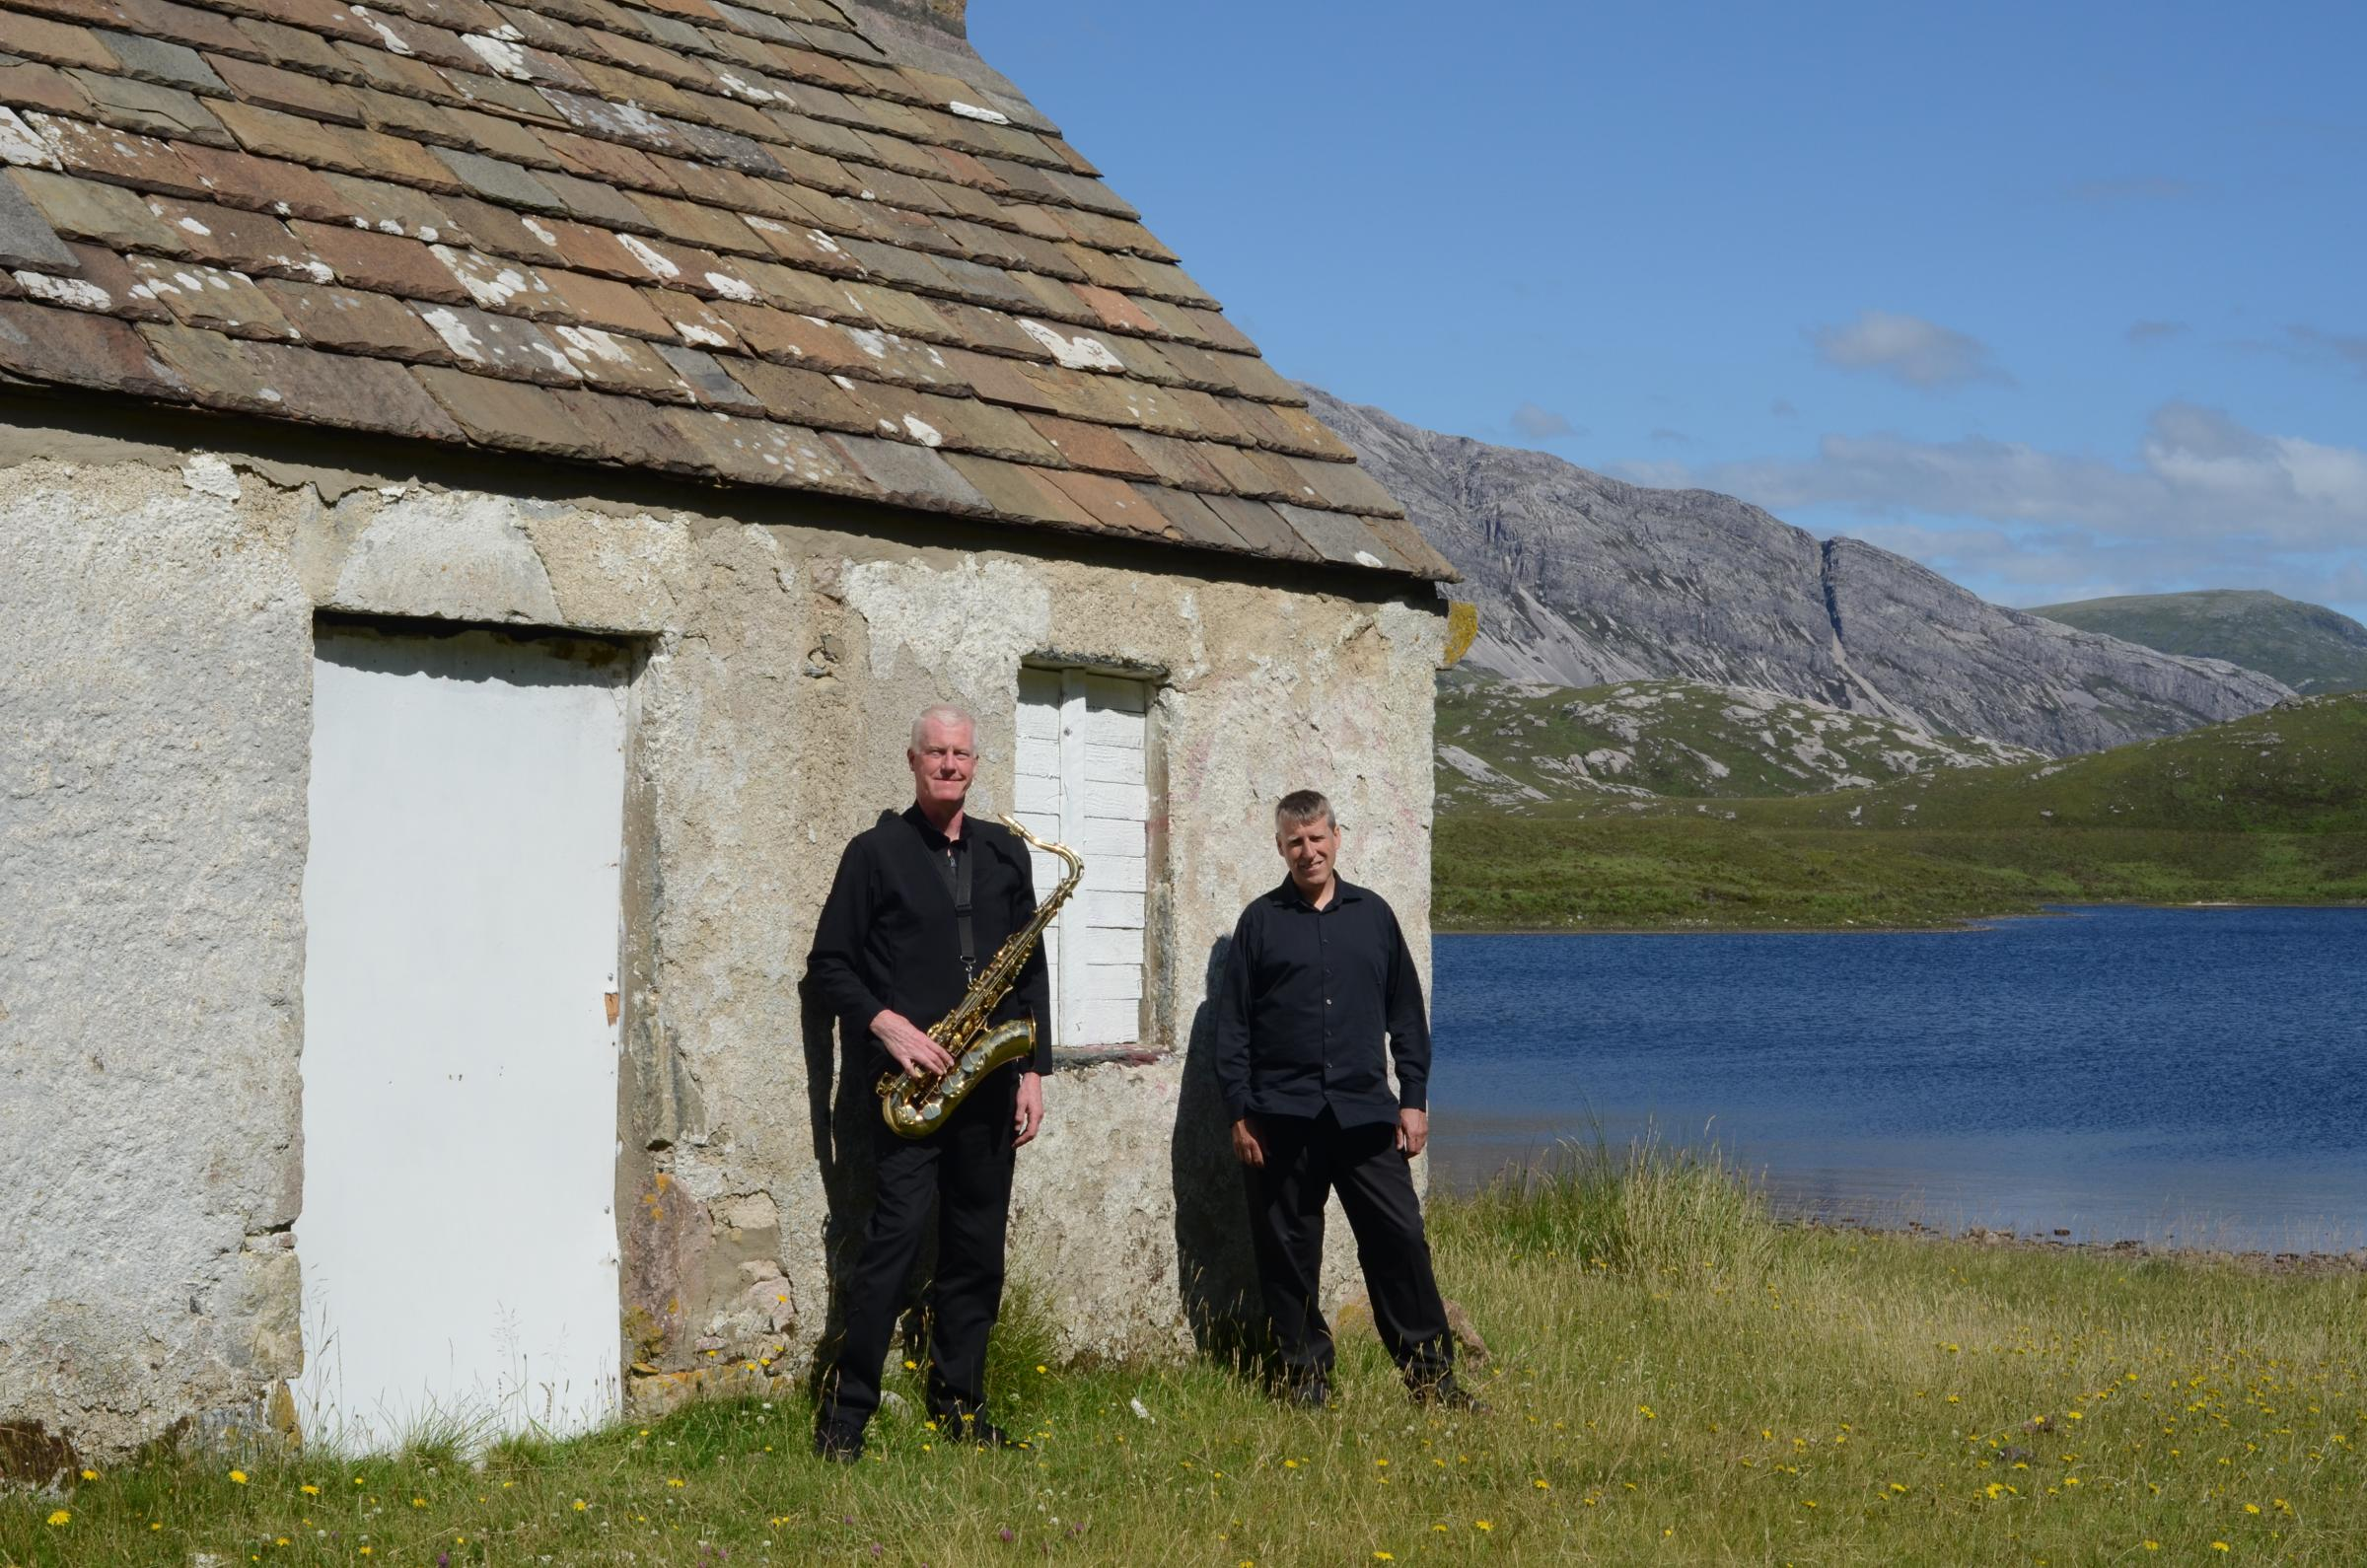 Jazz duo Ian Millar and Dominic Spencer at Loch Stack in Scotland.